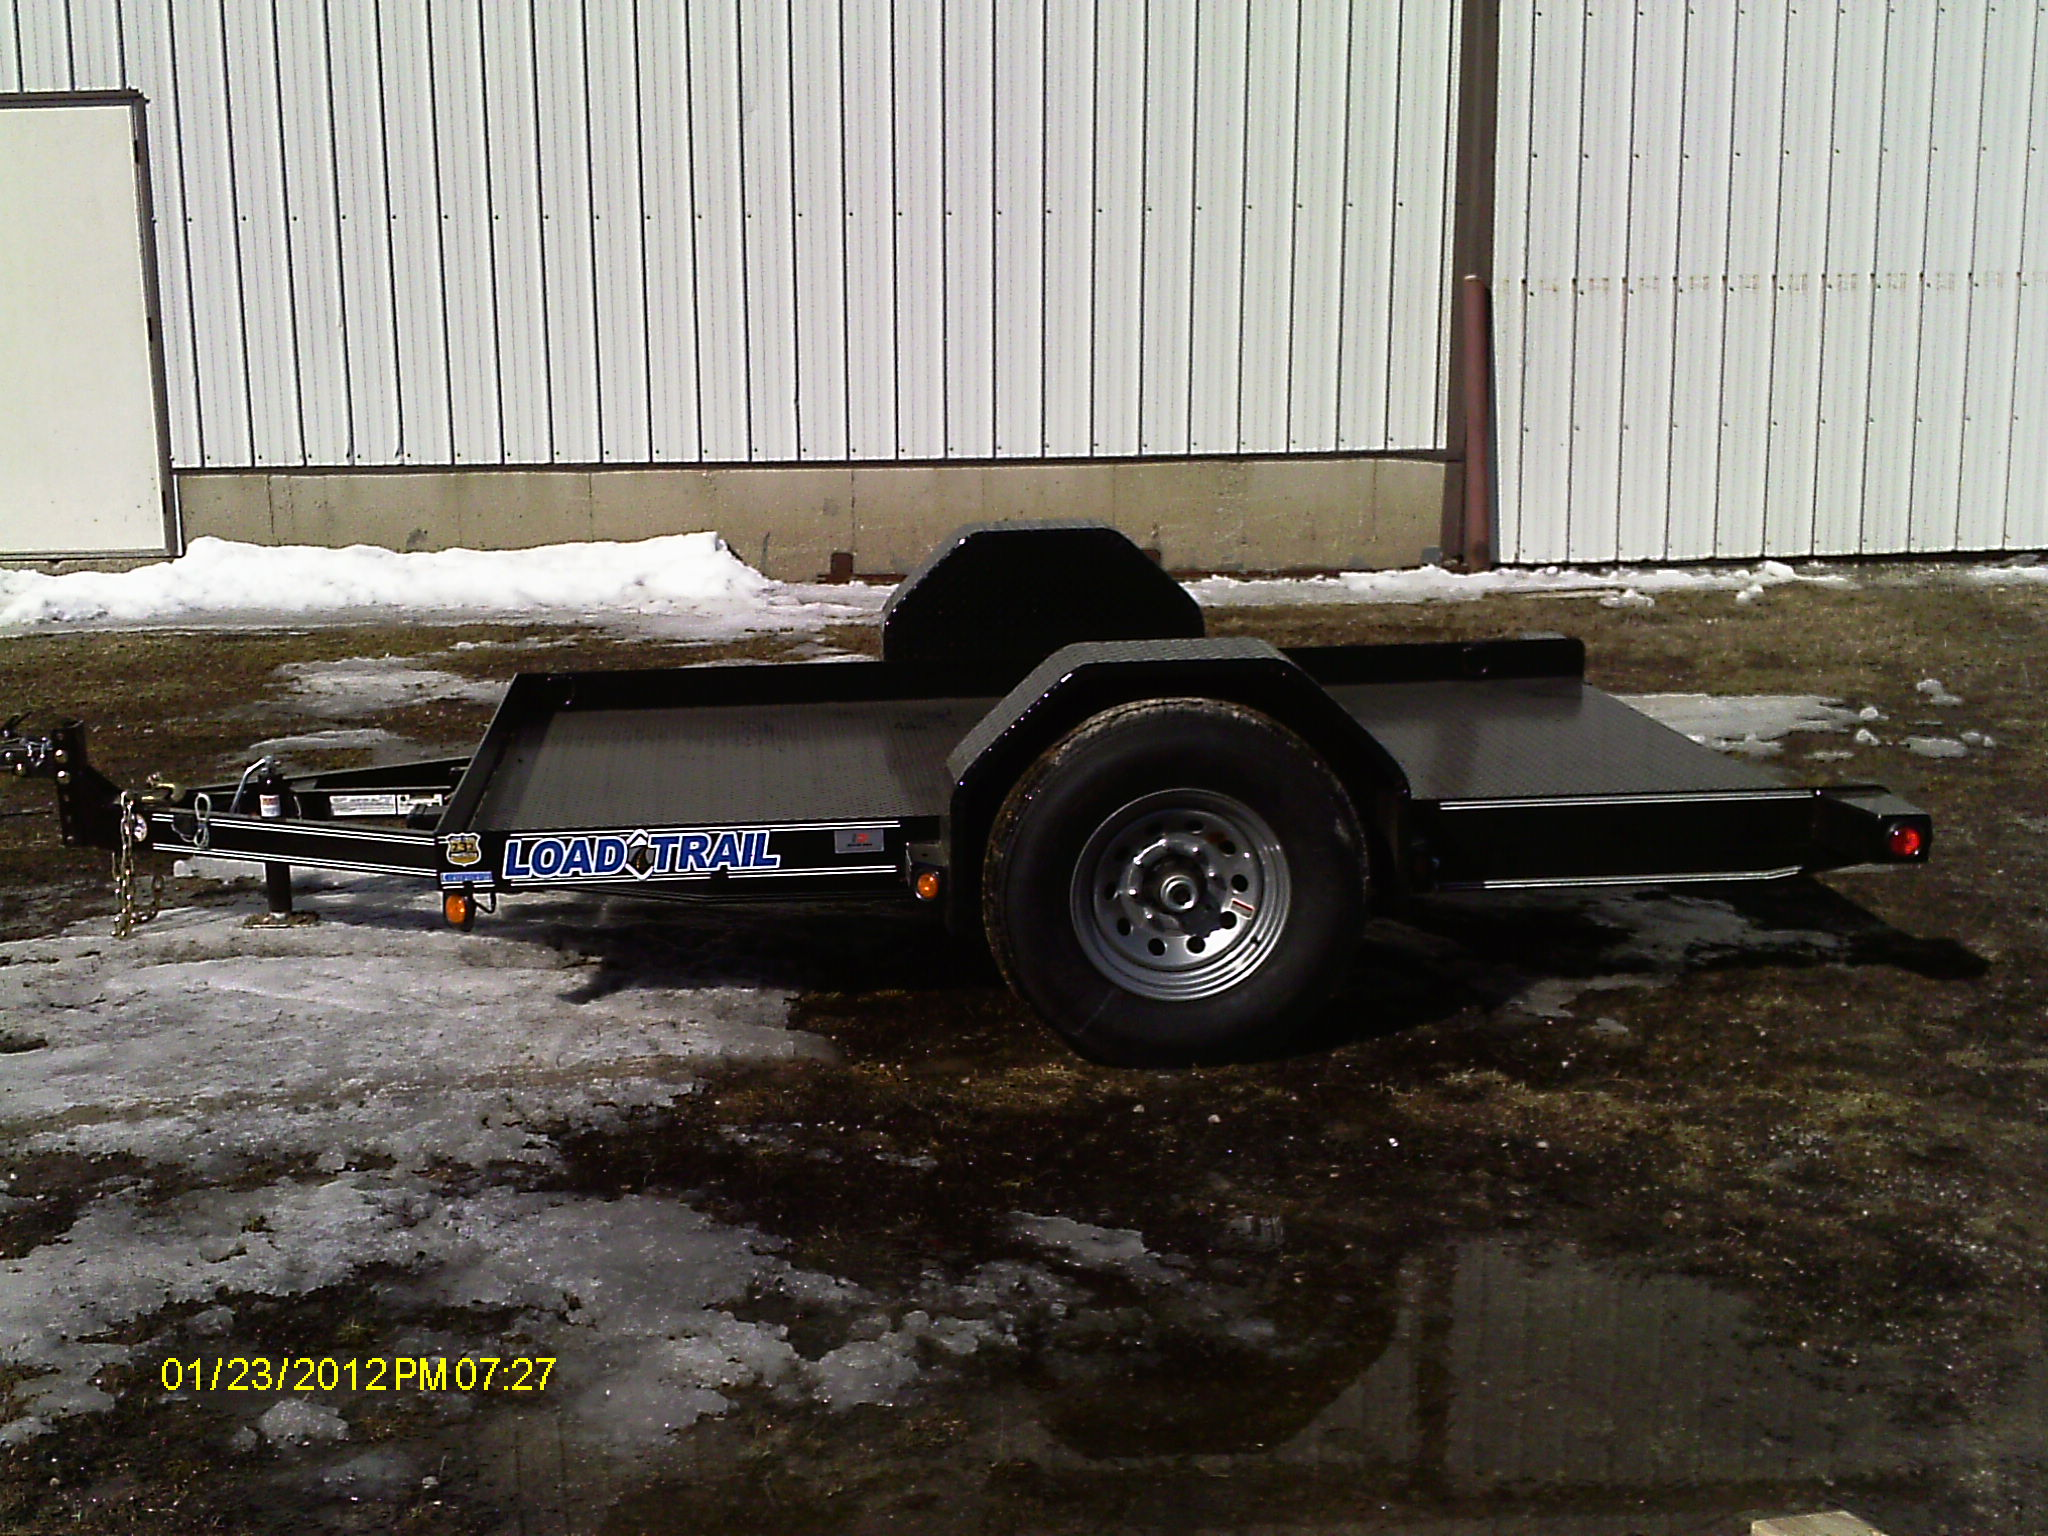 Badger Trailer and Power: Equipment - Car Hauler